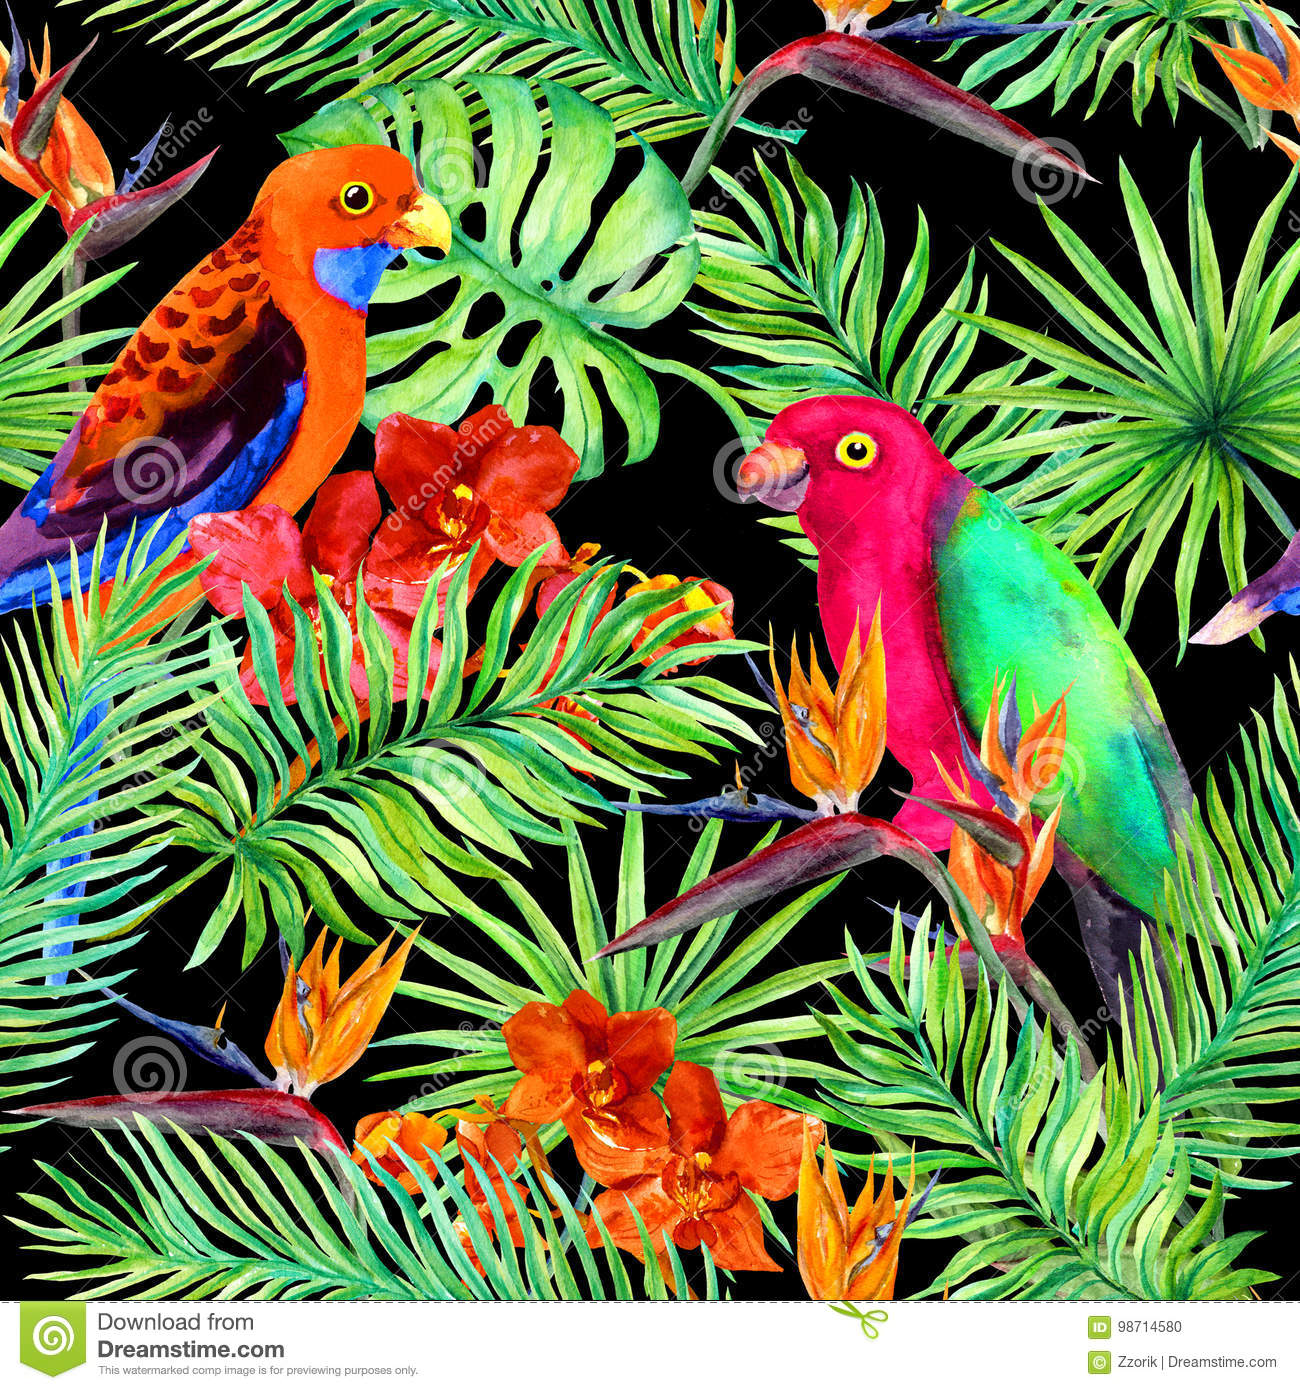 Tropical leaves, parrot birds, exotic flowers. Seamless jungle pattern on black background. Watercolor